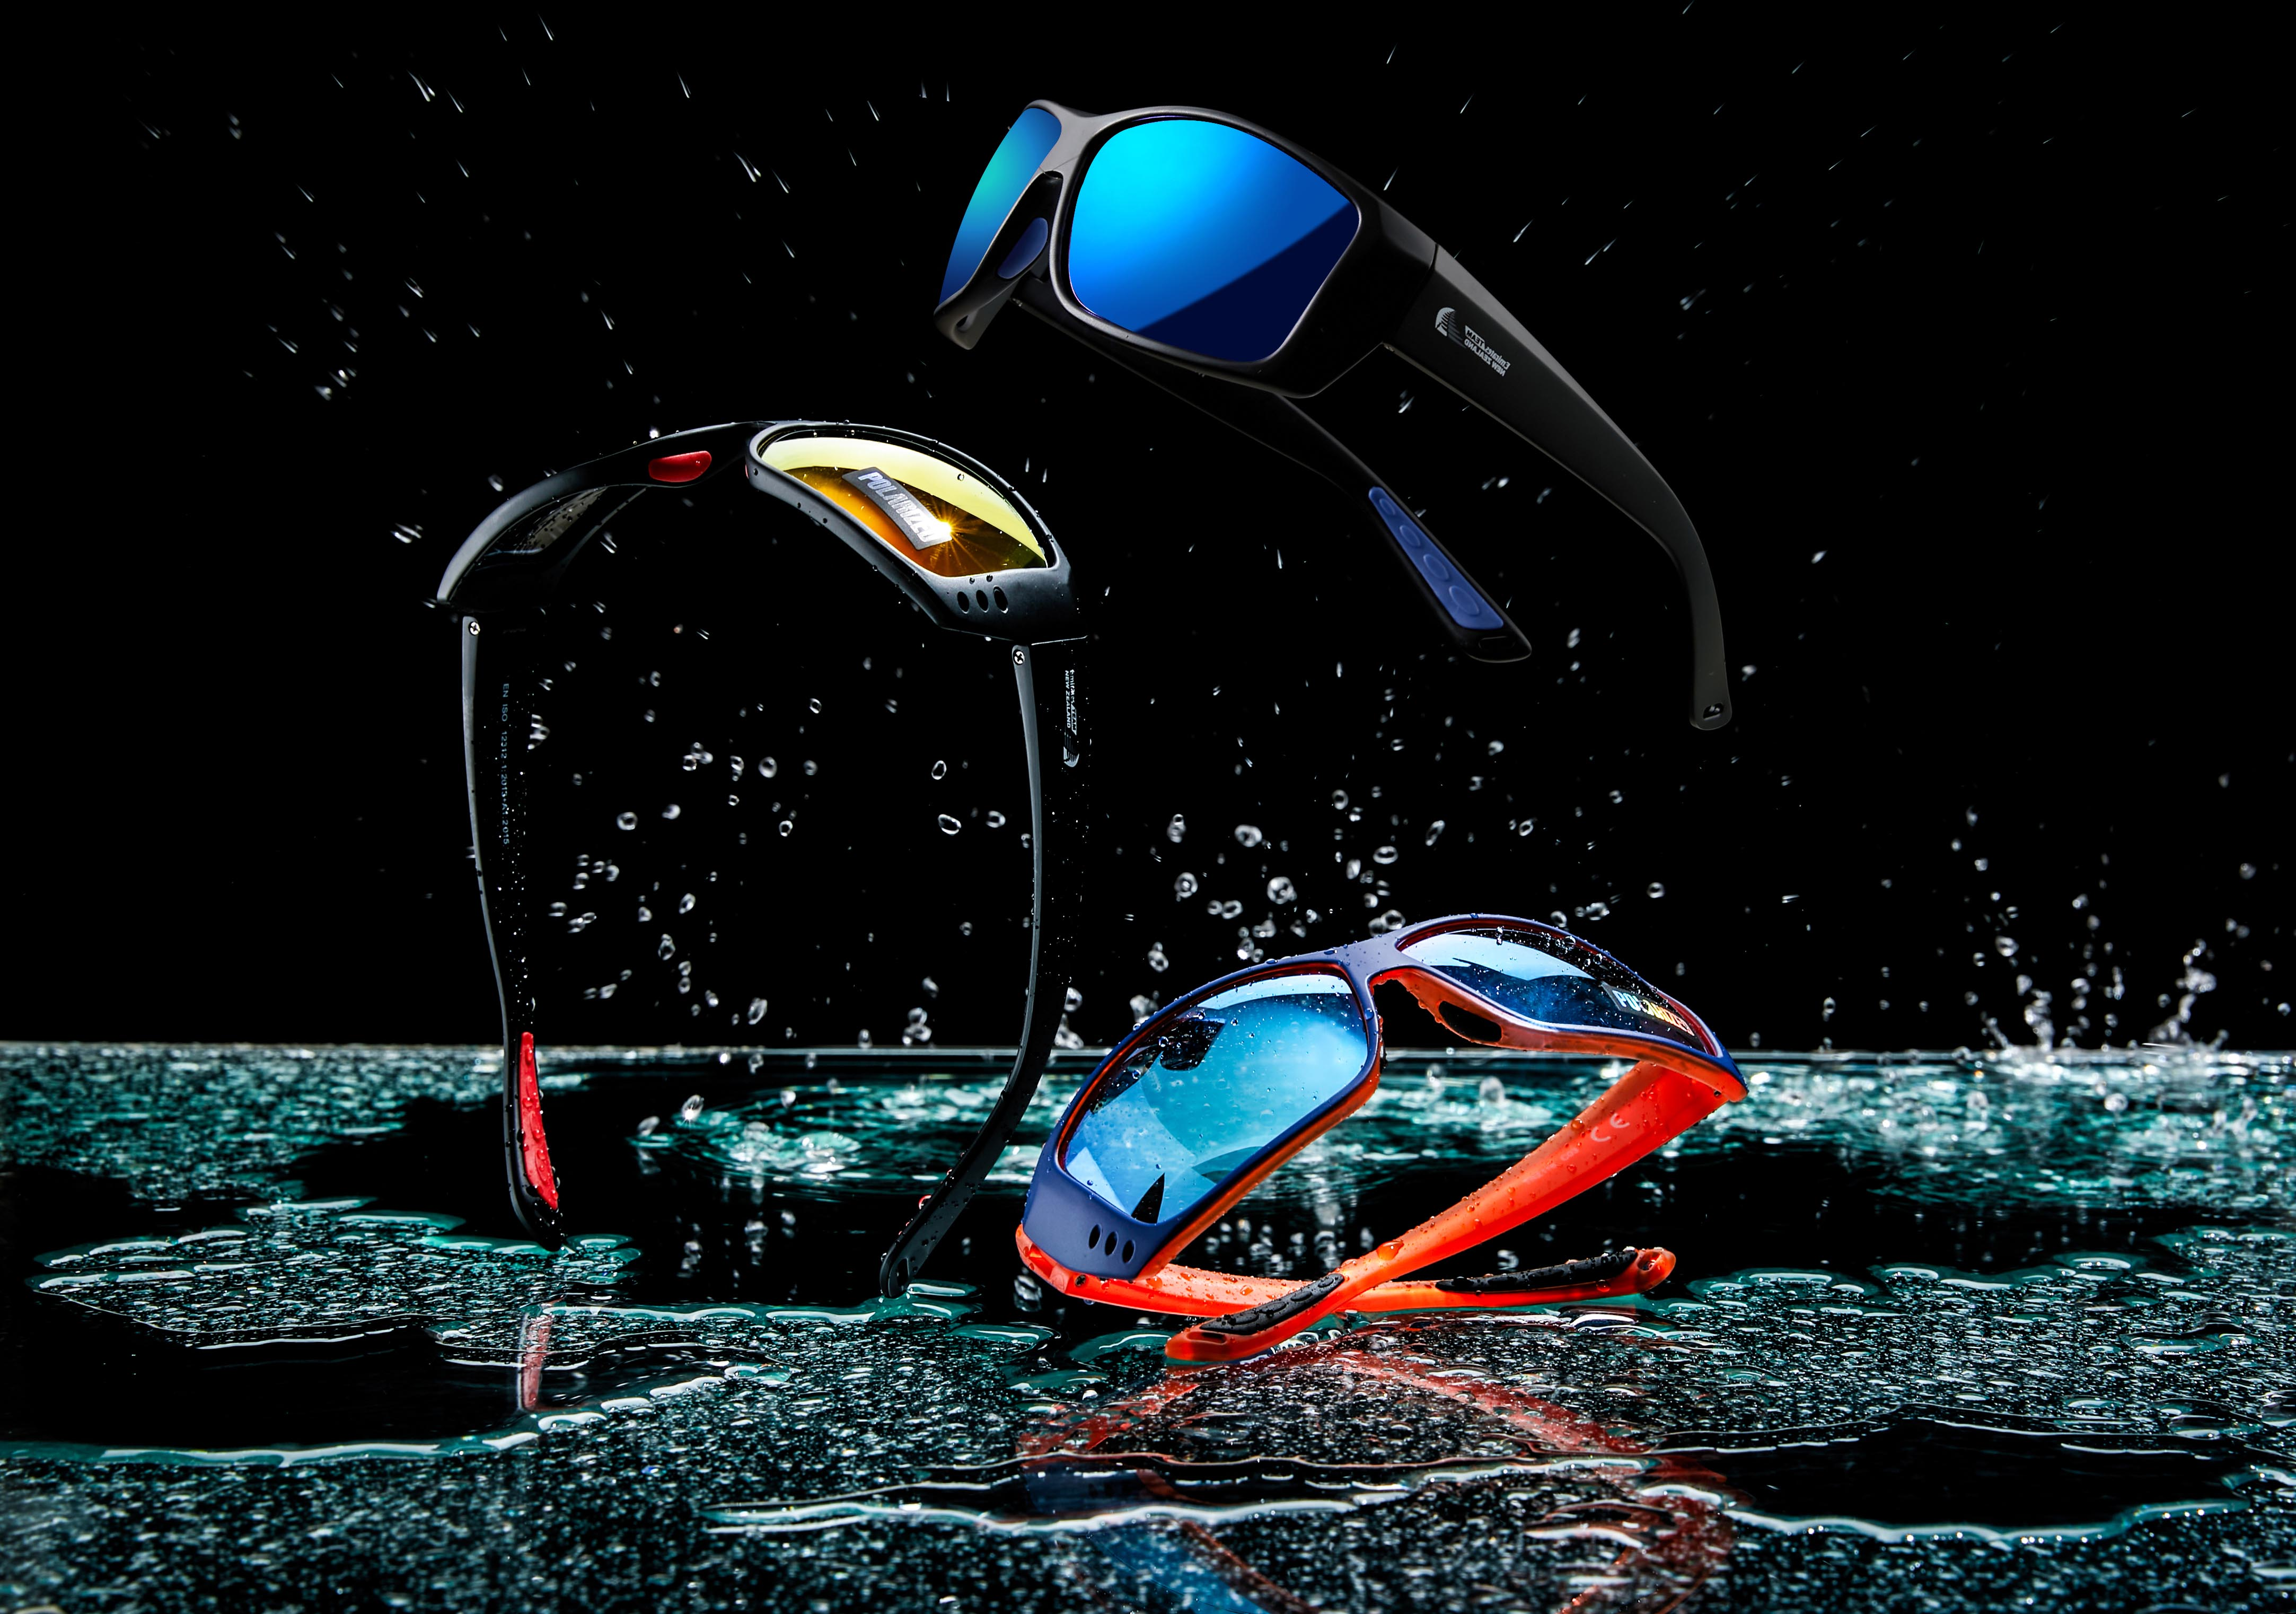 Tnz116 driving sunglasses for outdoor water sports